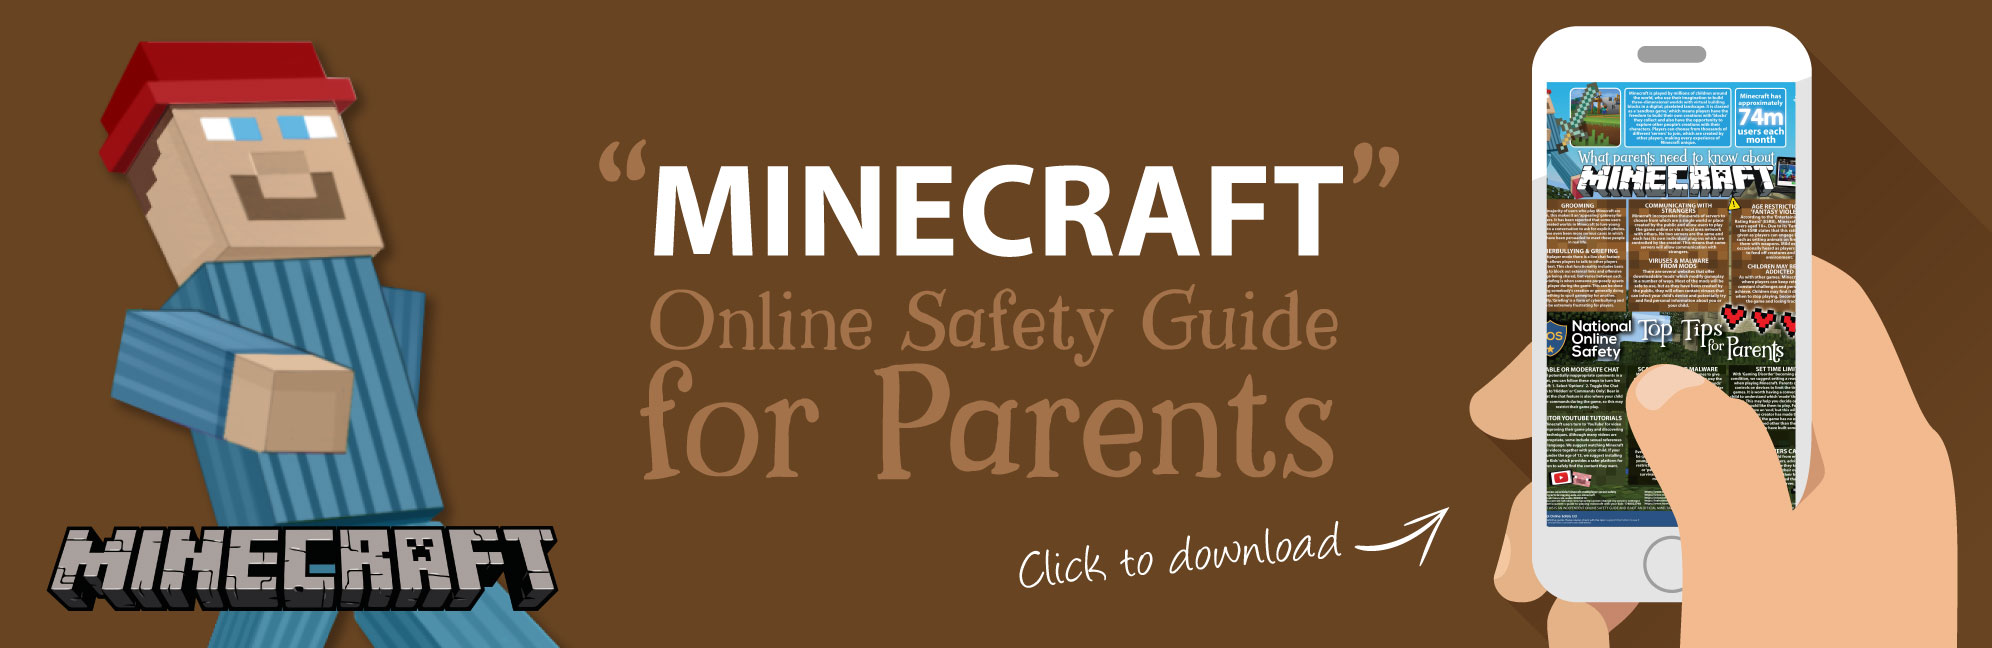 Minecraft-Online-Safety-Parents-Guide-Web-Image-121118-V1